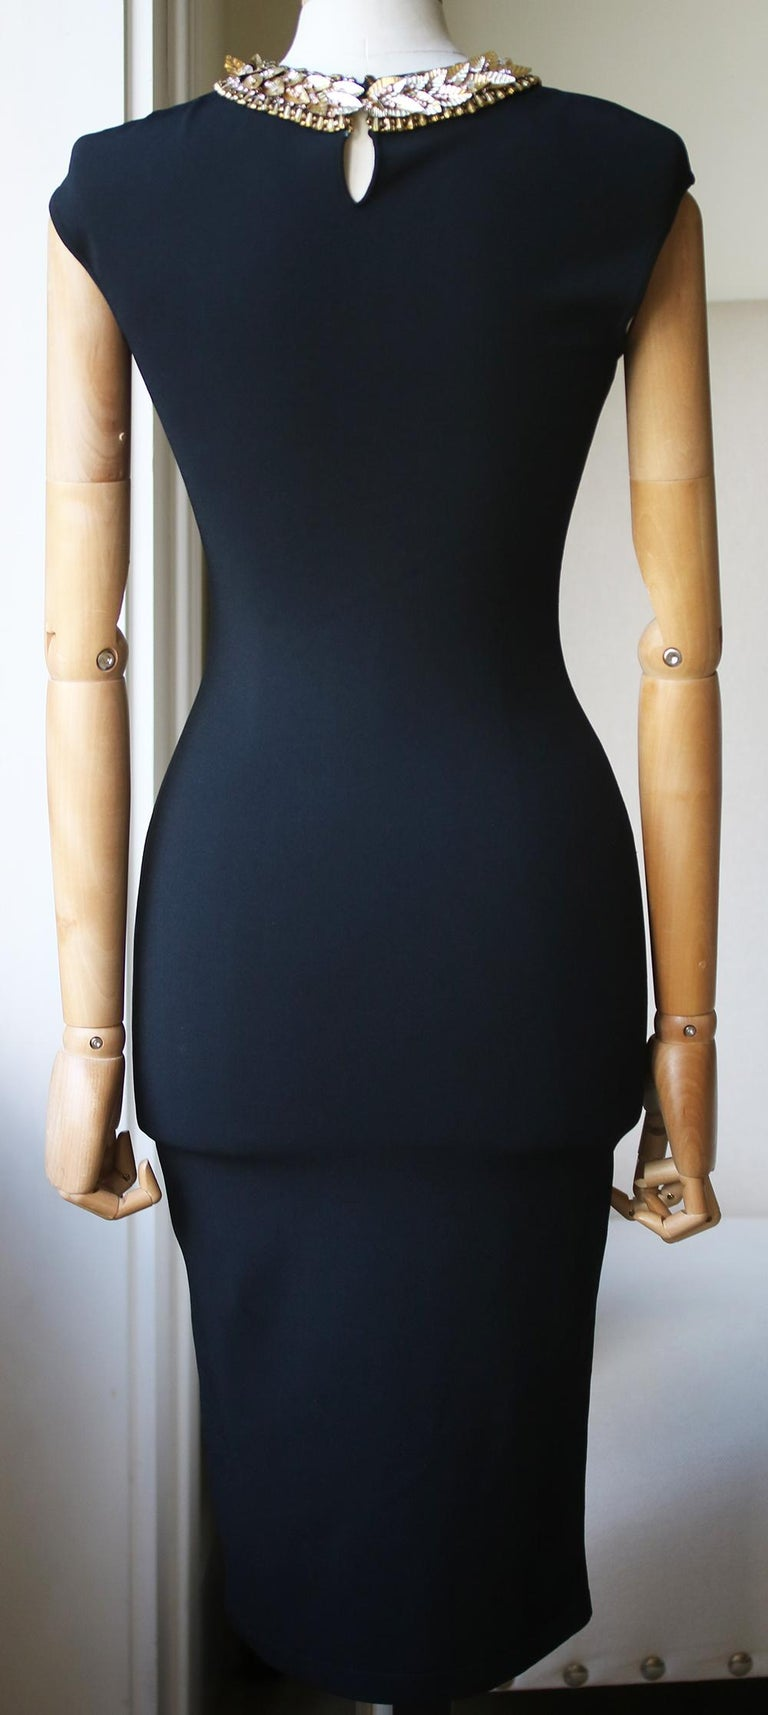 Alexander McQueen Embellished Stretch-Knit Dress  In Excellent Condition In London, GB